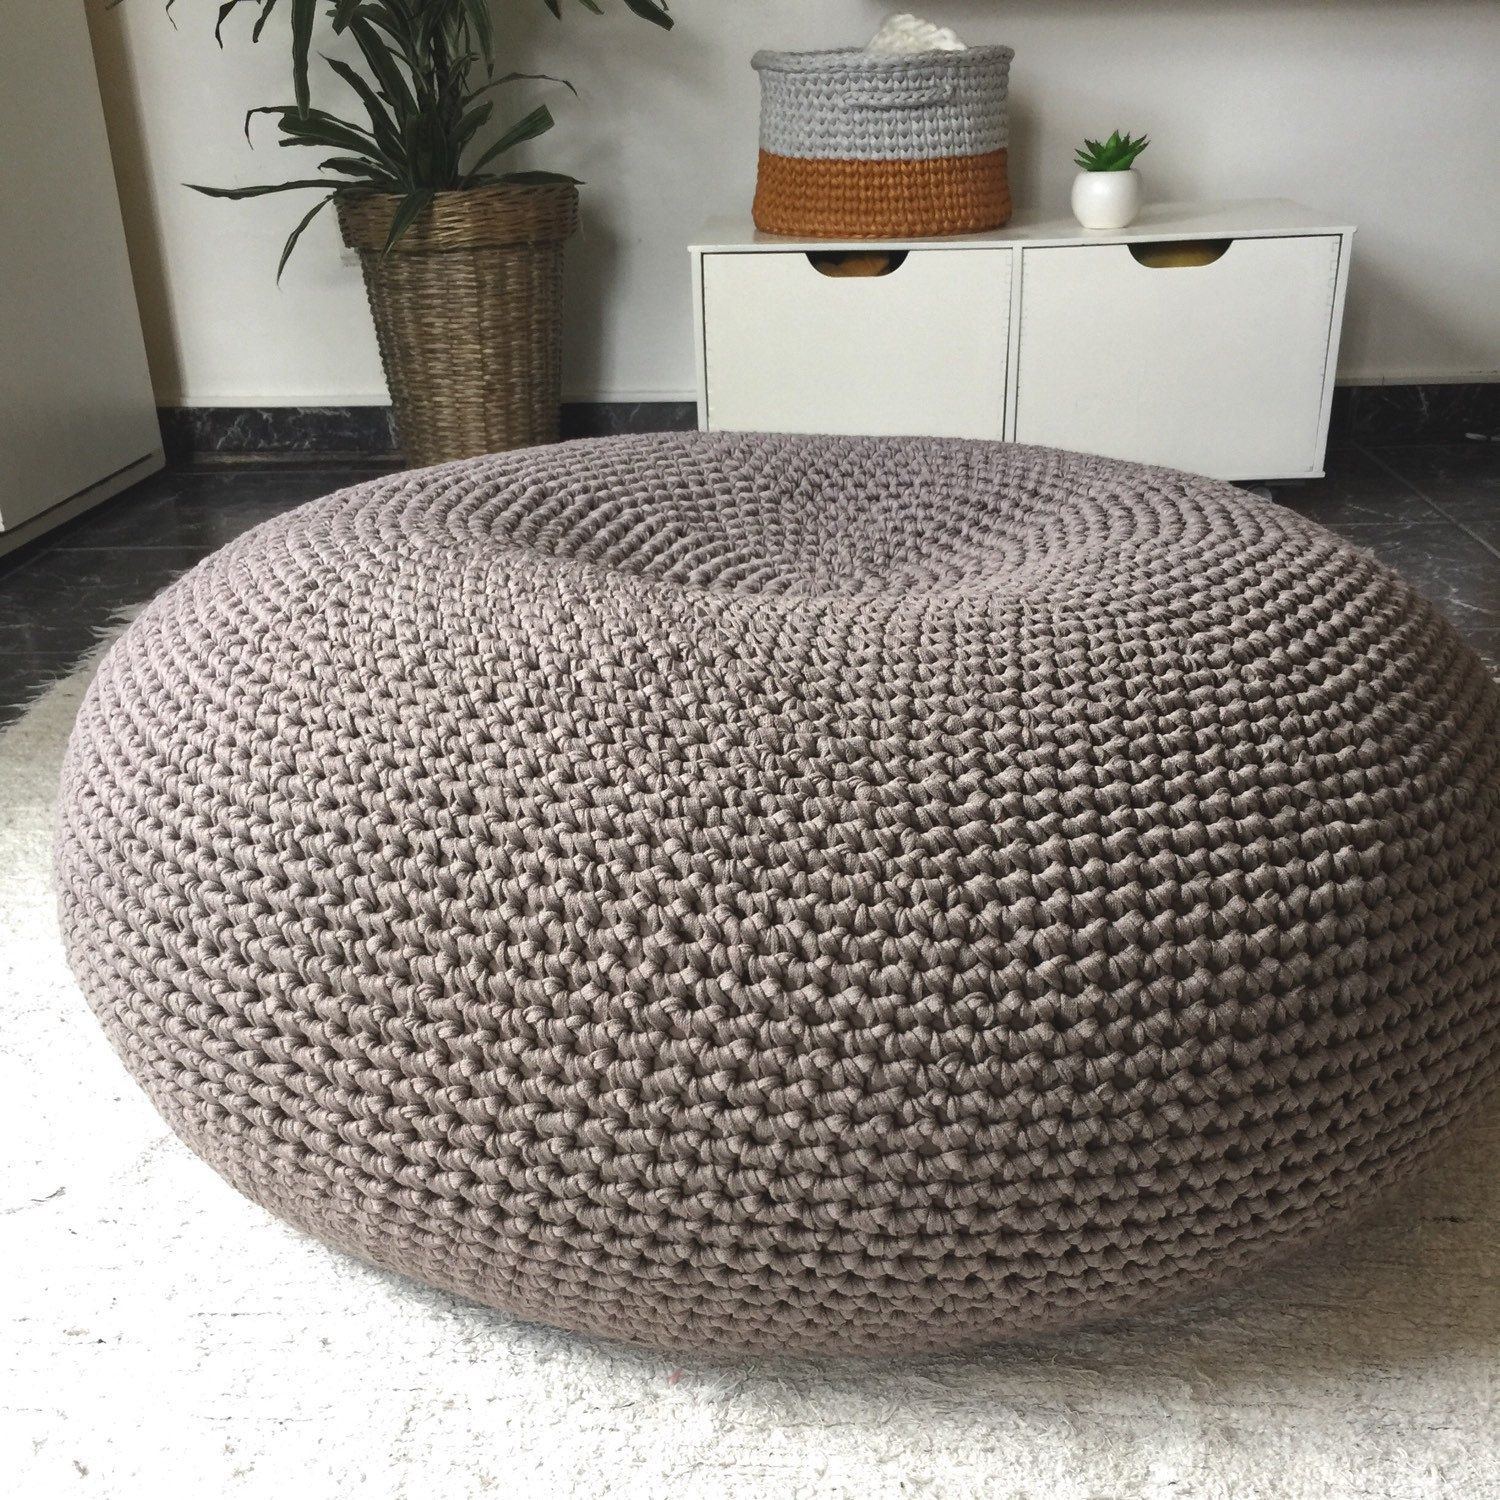 Large Pouf Ottoman Unique Giant Pouf Ottomanlarge Round Ottomangiant Floor Pillowjumbo Review